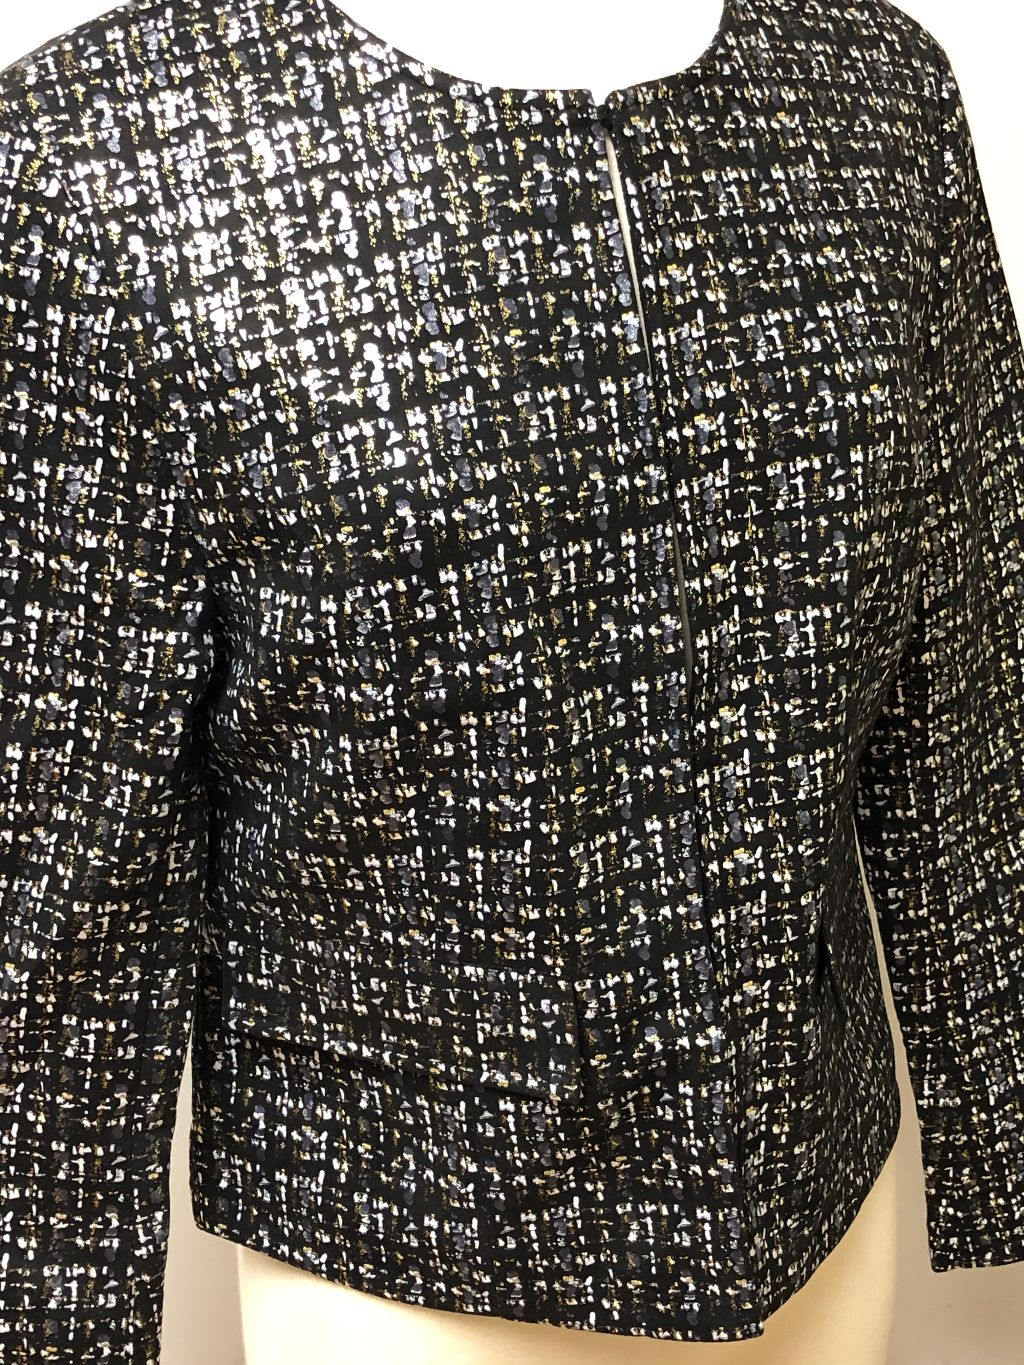 REBECCA GLITTER PRINT BLAZER METALLIC GOLD/BLACK